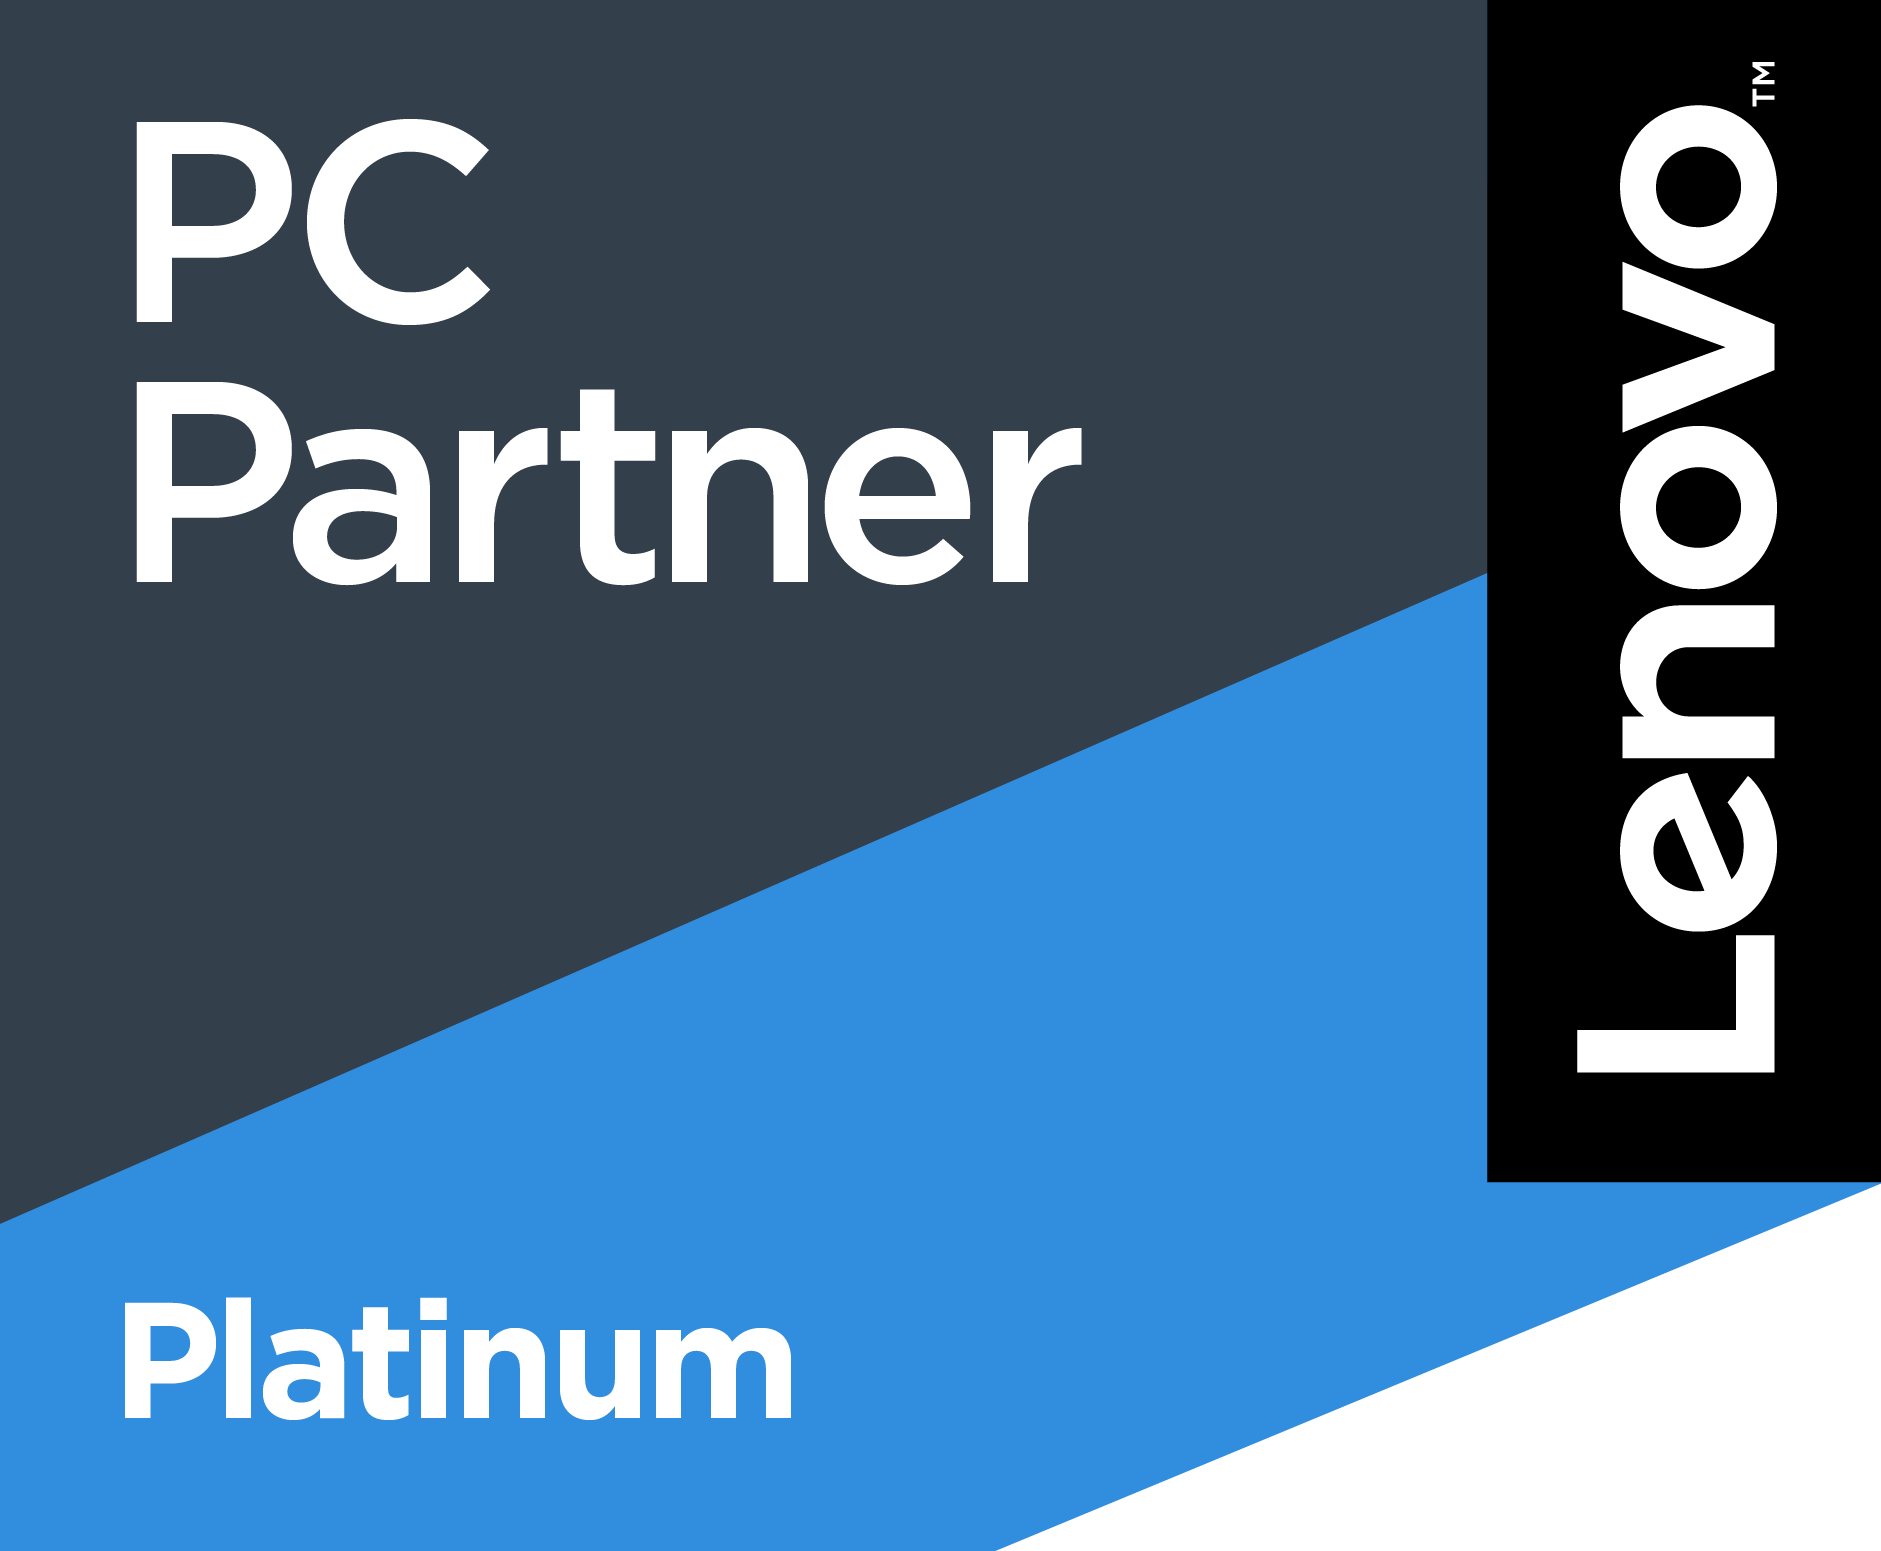 Lenovo Platinum PC Partner